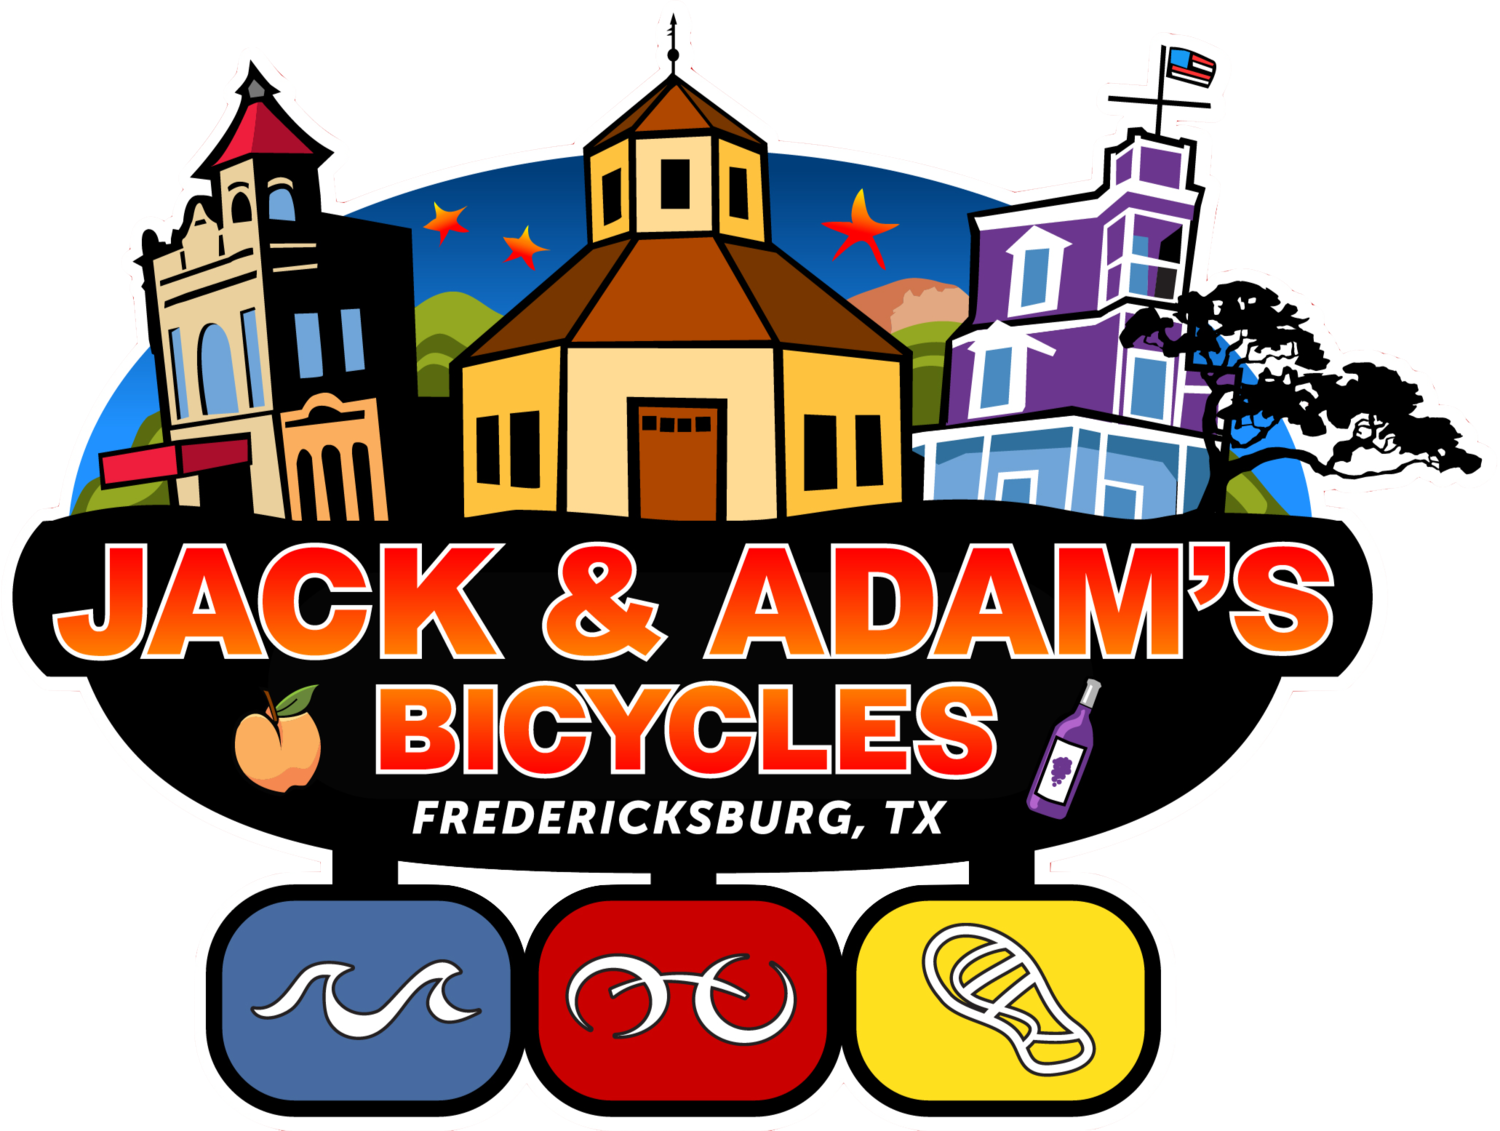 Jack and Adams Bicycles, Fredericksburg